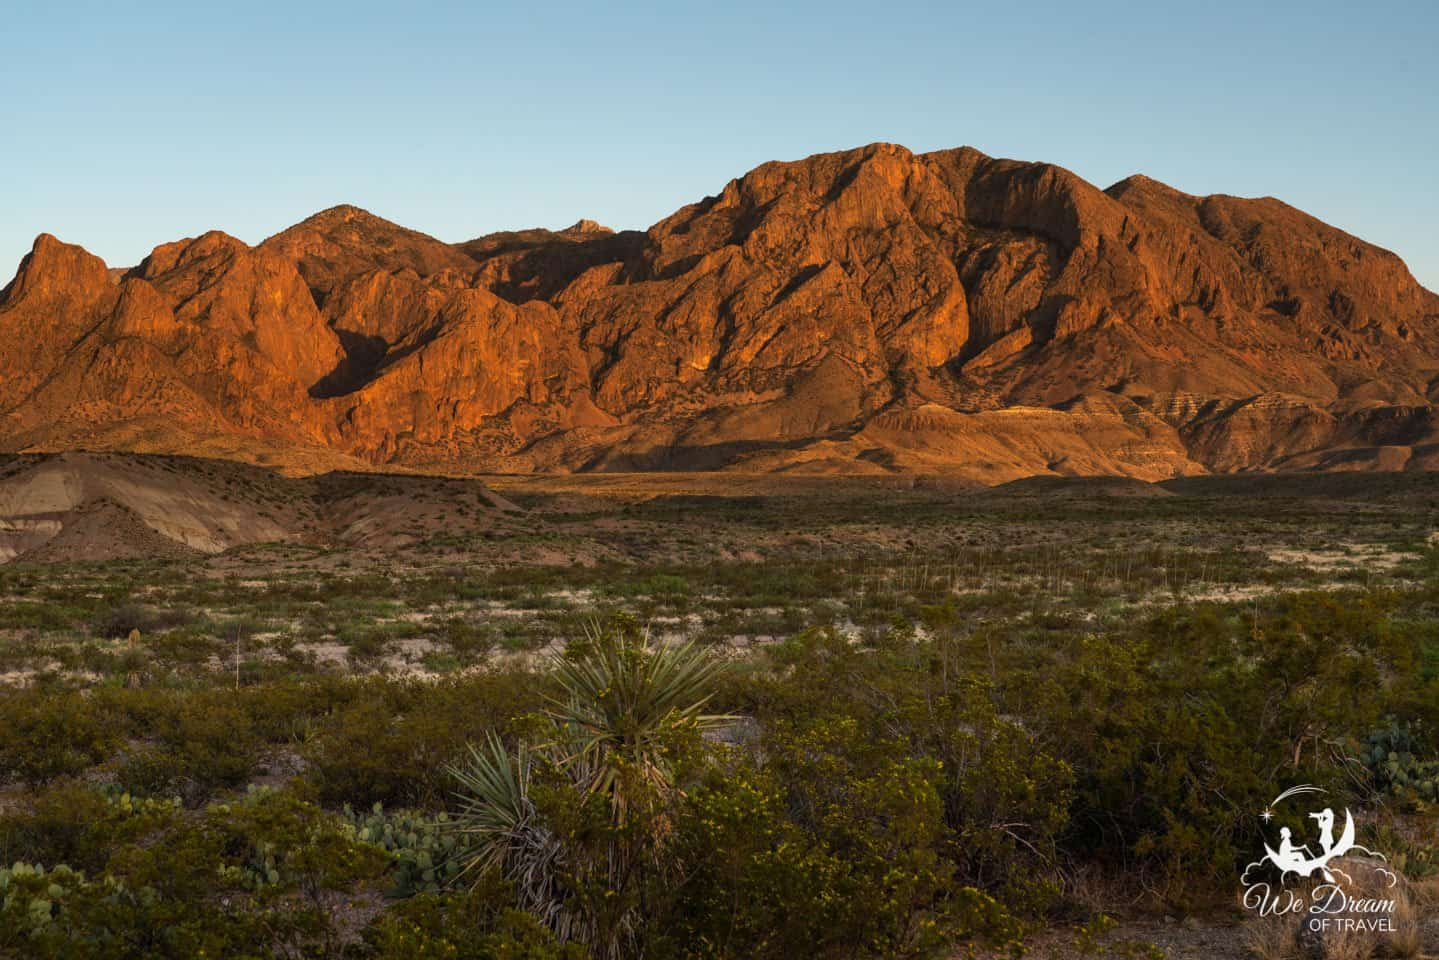 The Chisos Mountains glow with vibrance in the evening golden hour.